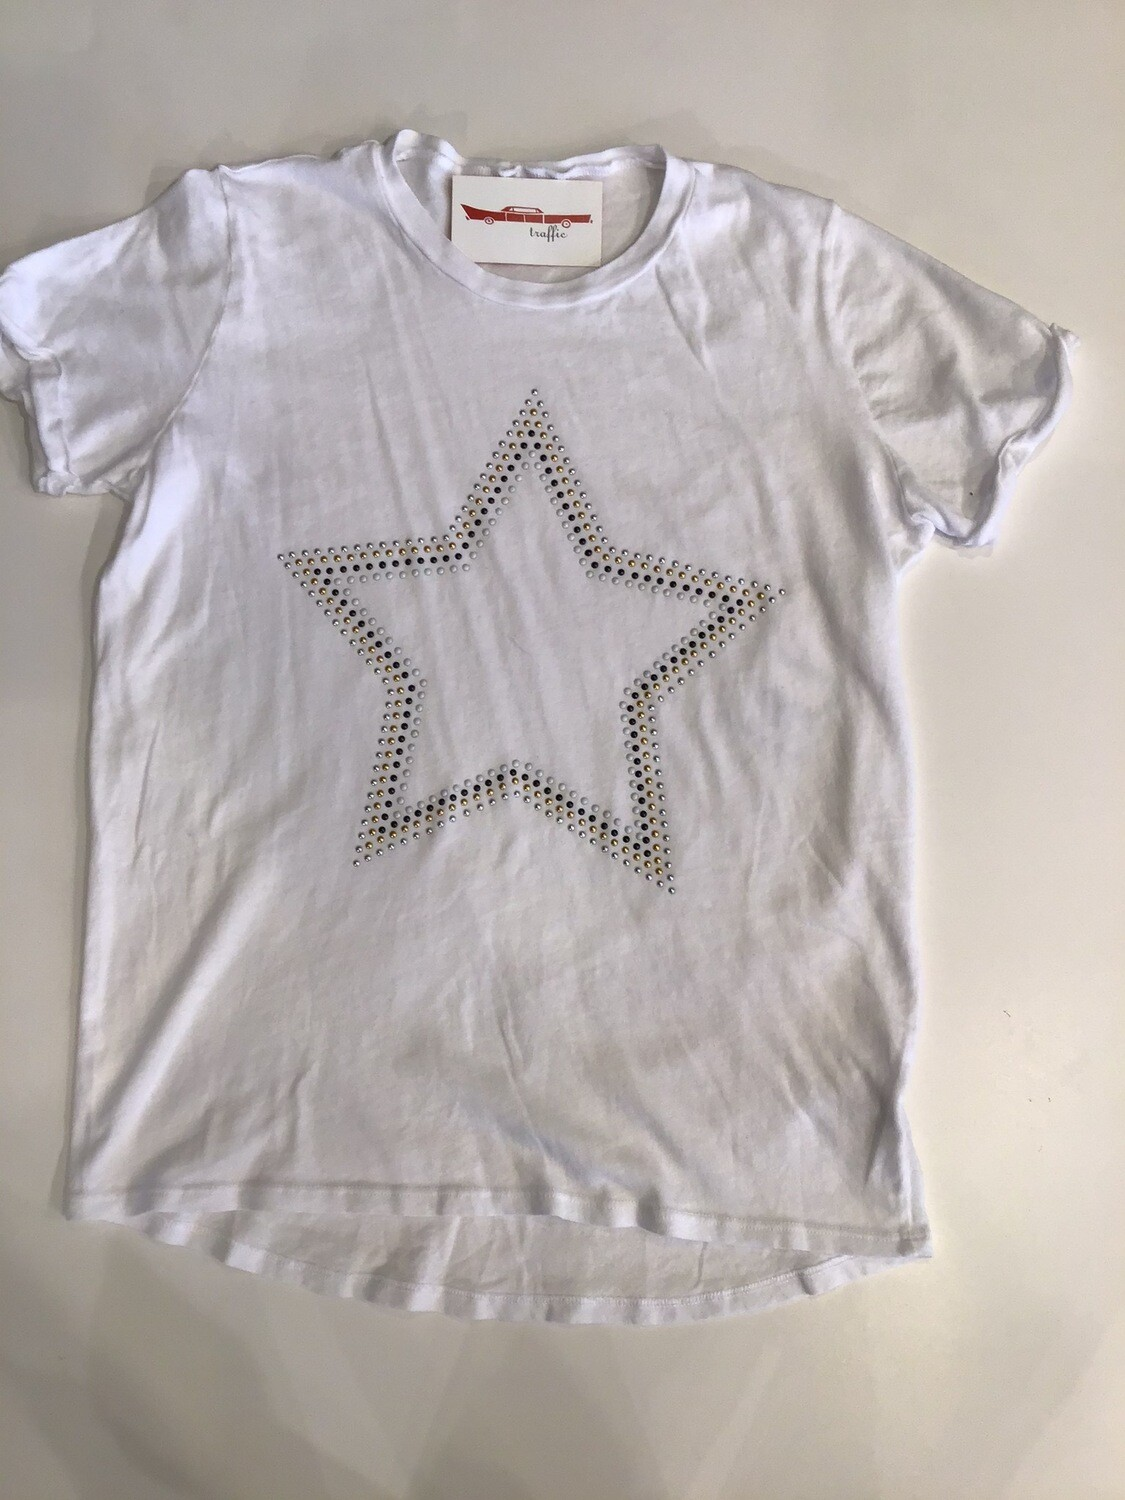 Star Studded s/s Cuffed Tee